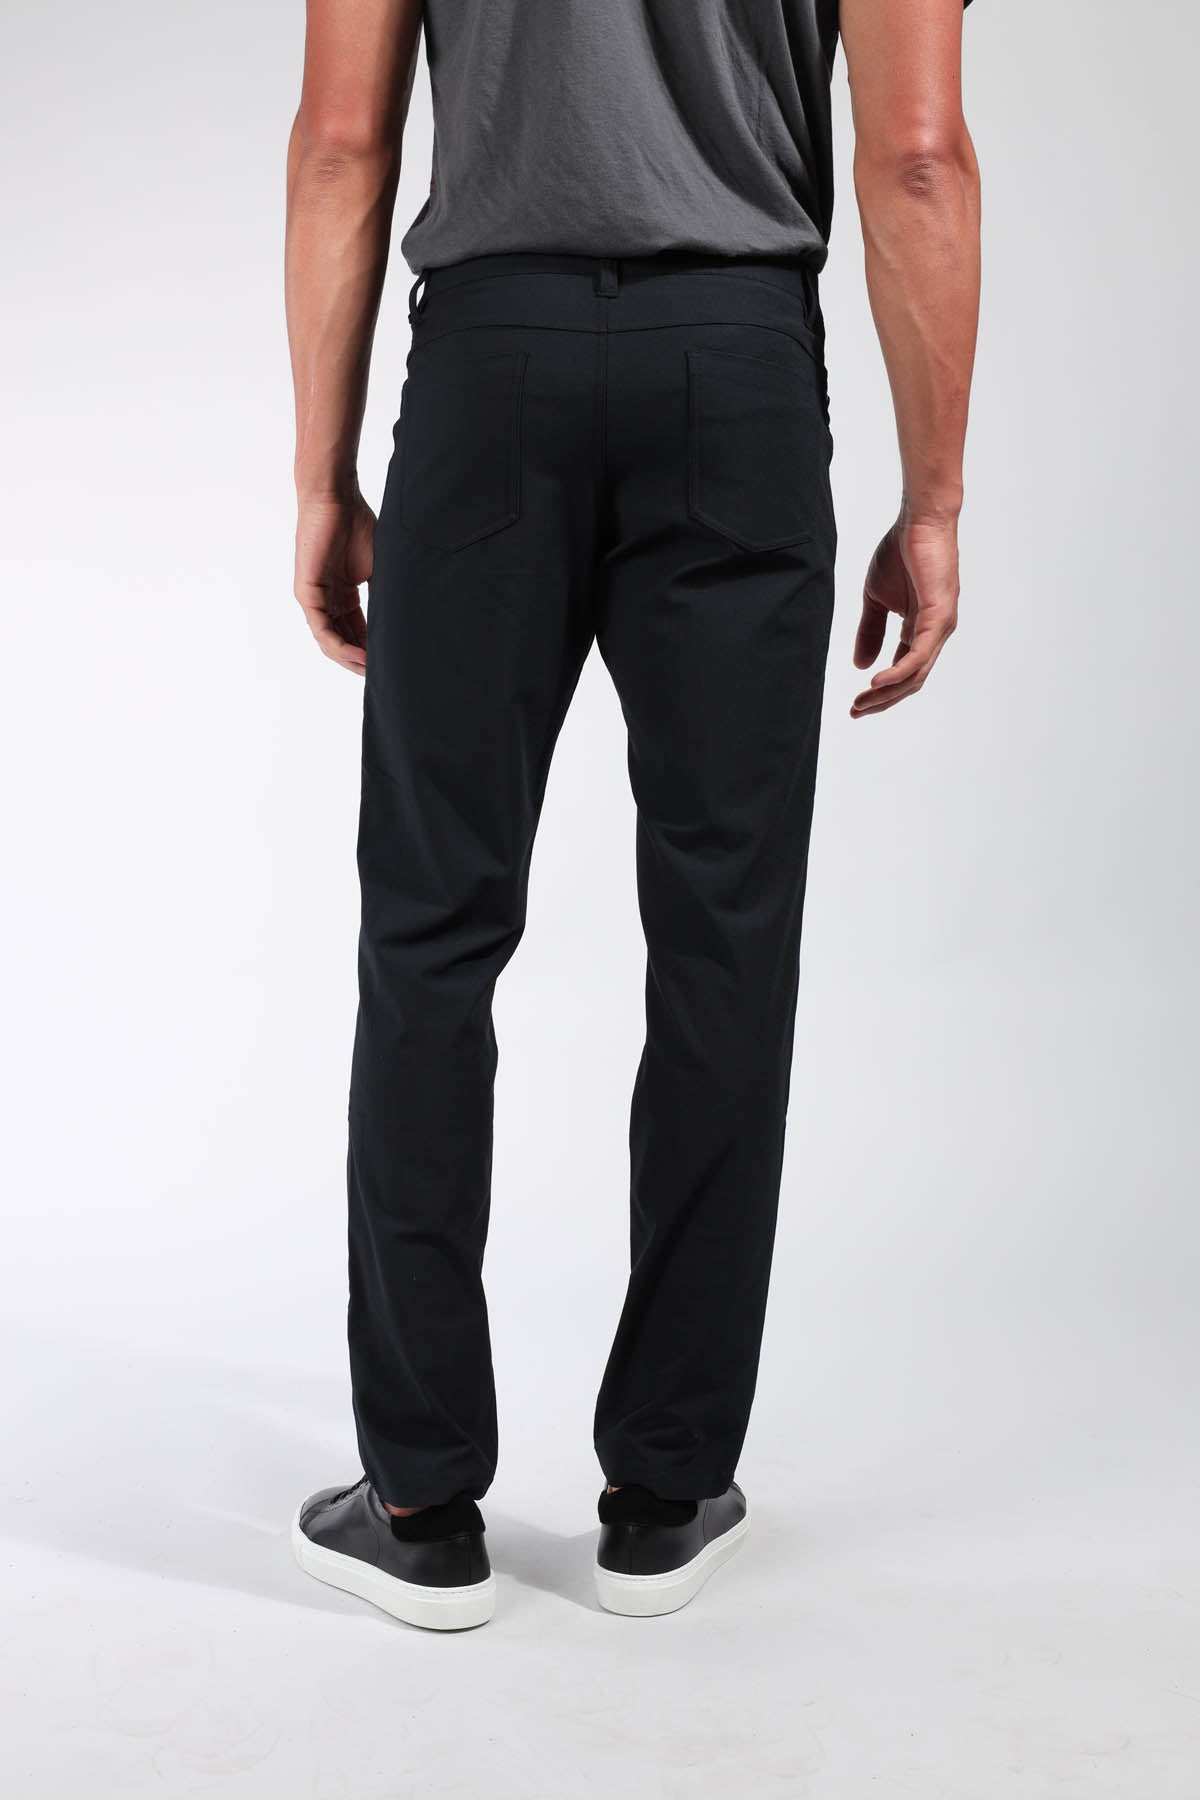 Load image into Gallery viewer, Voyager Pant - Black